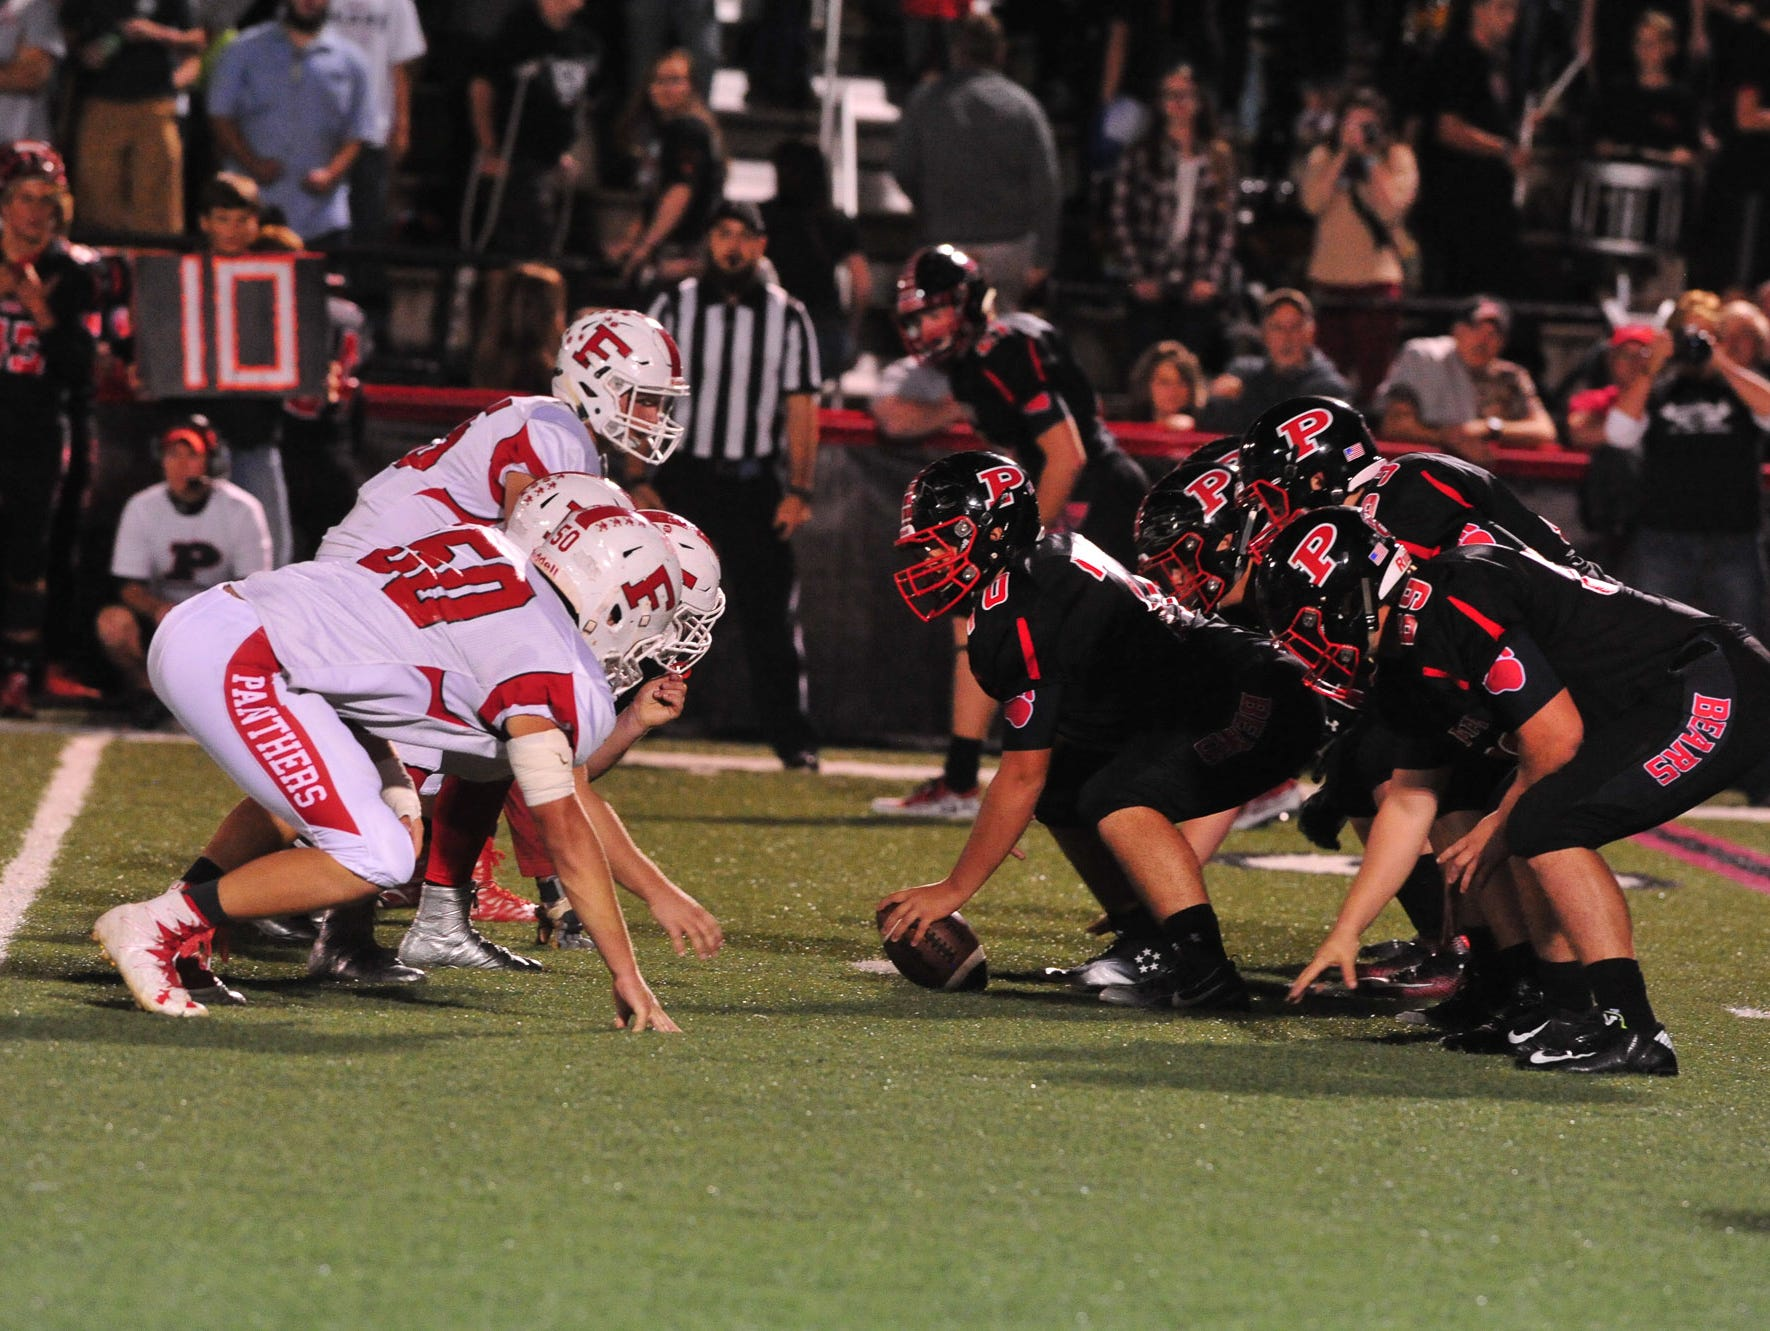 Pisgah defeated Franklin, 29-23, on Friday night in Canton.